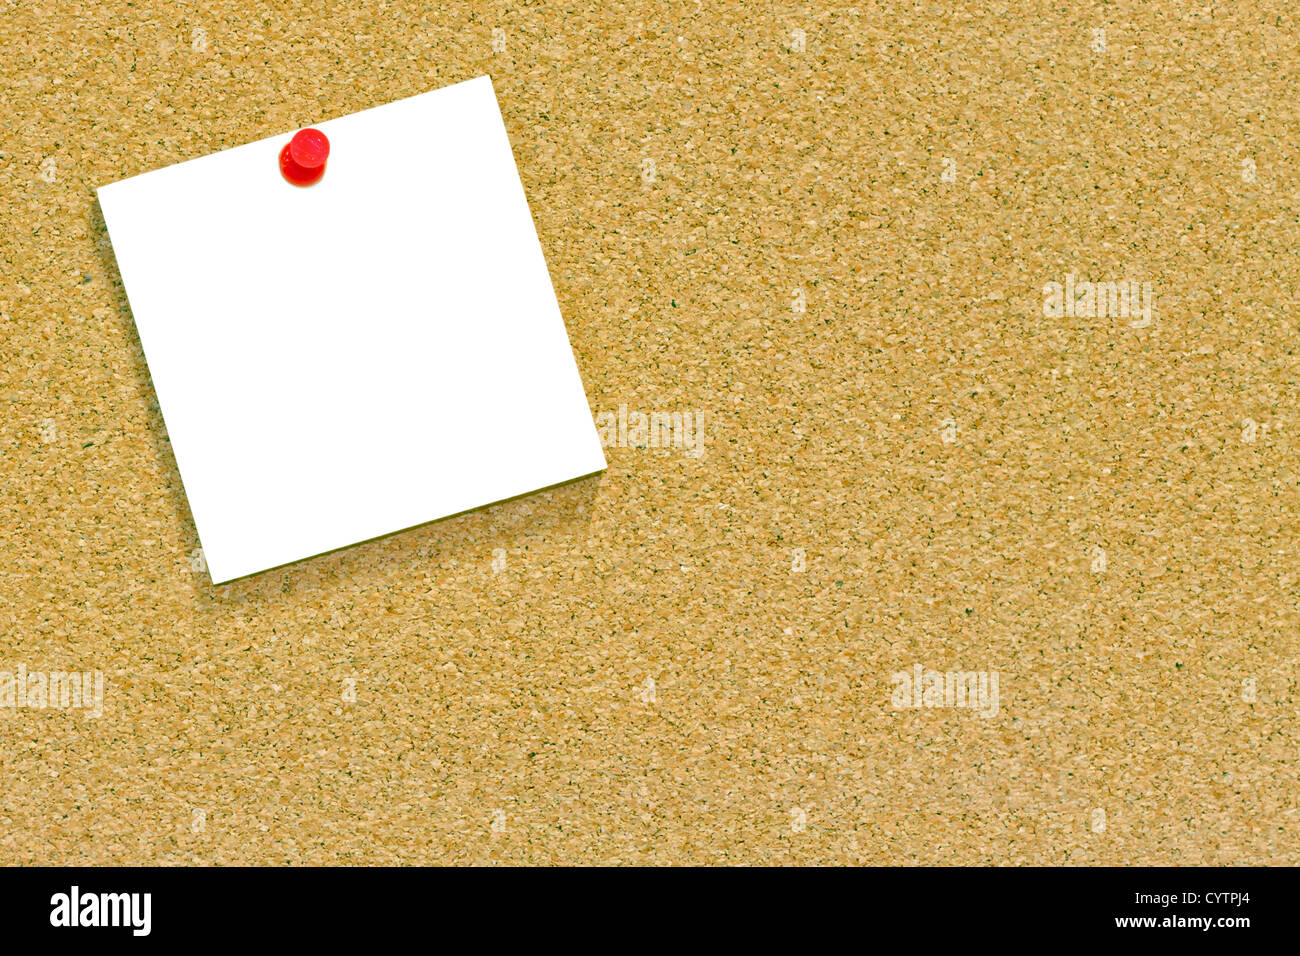 A blank memo or sticky note tacked to a cork notice board with copyspace. - Stock Image